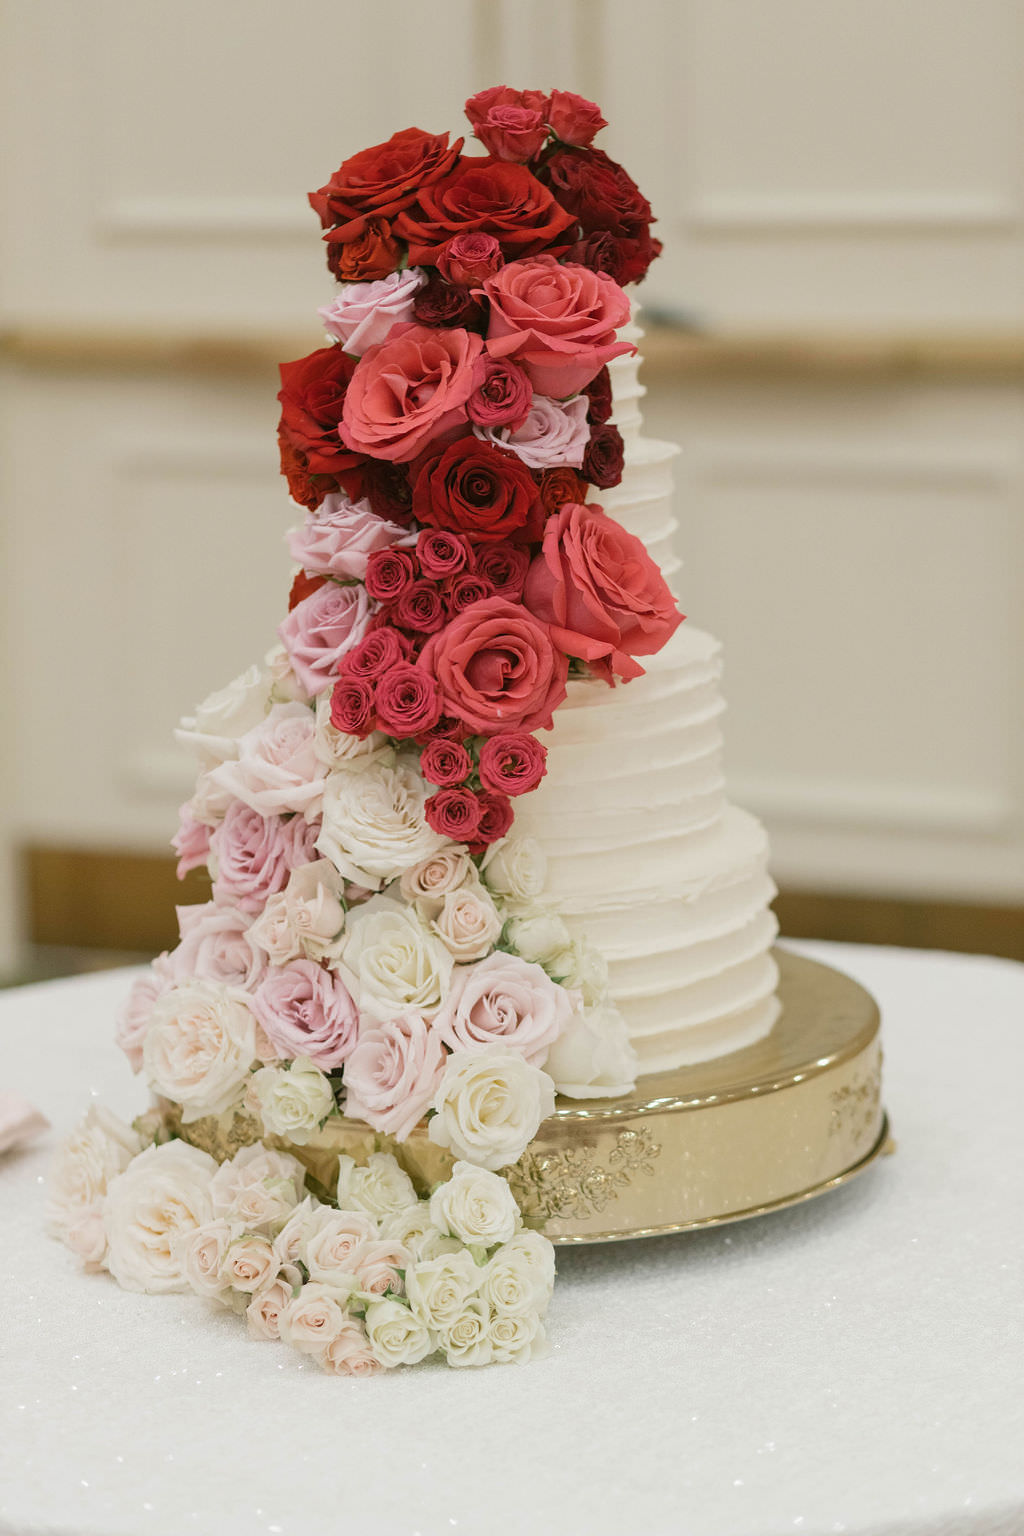 Classic White Ruffled Wedding Cake with Red, Pink, Blush, and Ivory Cascading Roses   Tampa Bay Wedding Planner Parties A'la Carte   Wedding Florist Bruce Wayne Florals